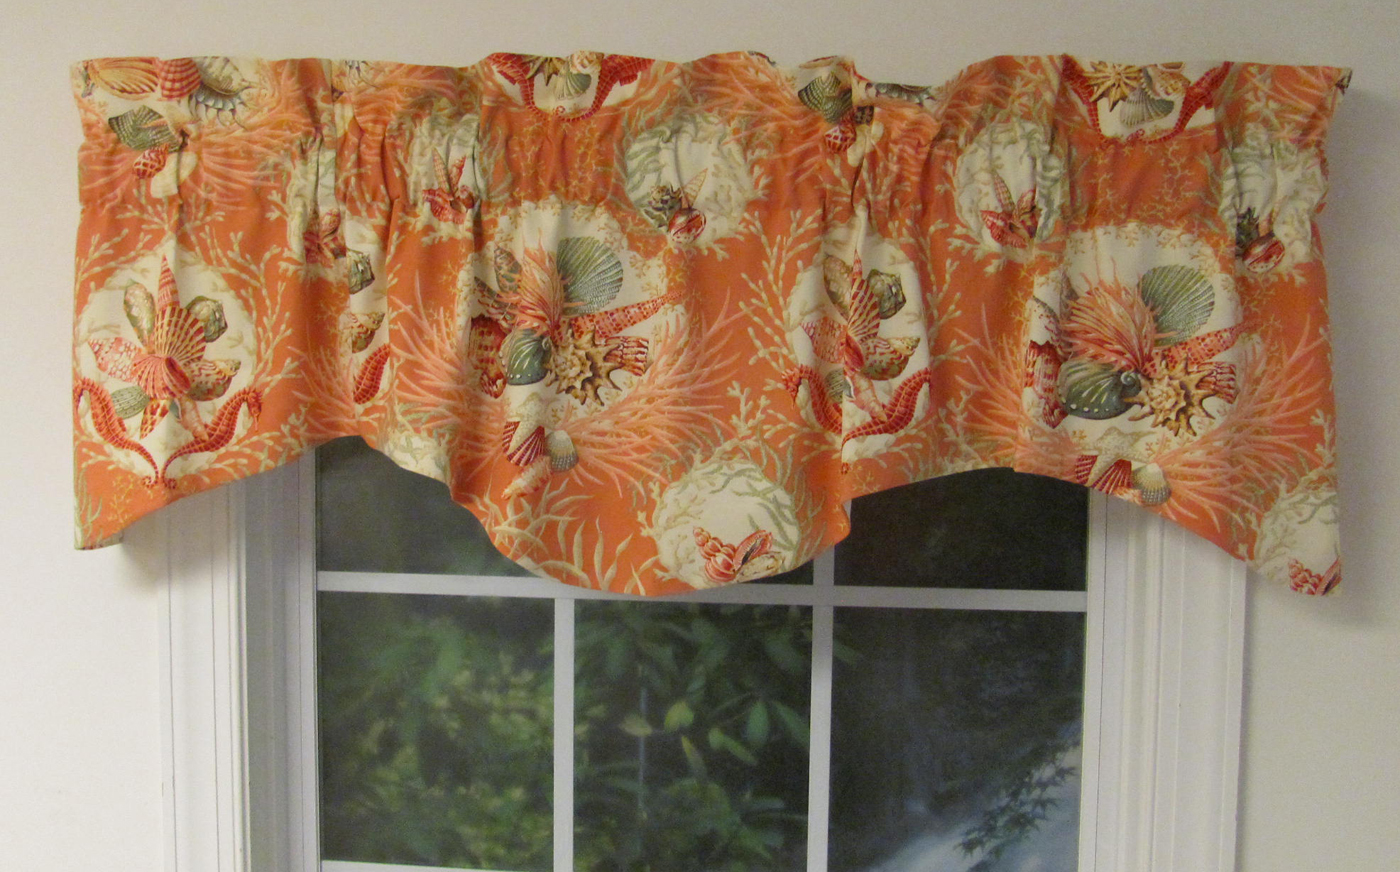 Seaworthy shell pattern window valances and swags - Boutique free valence ...